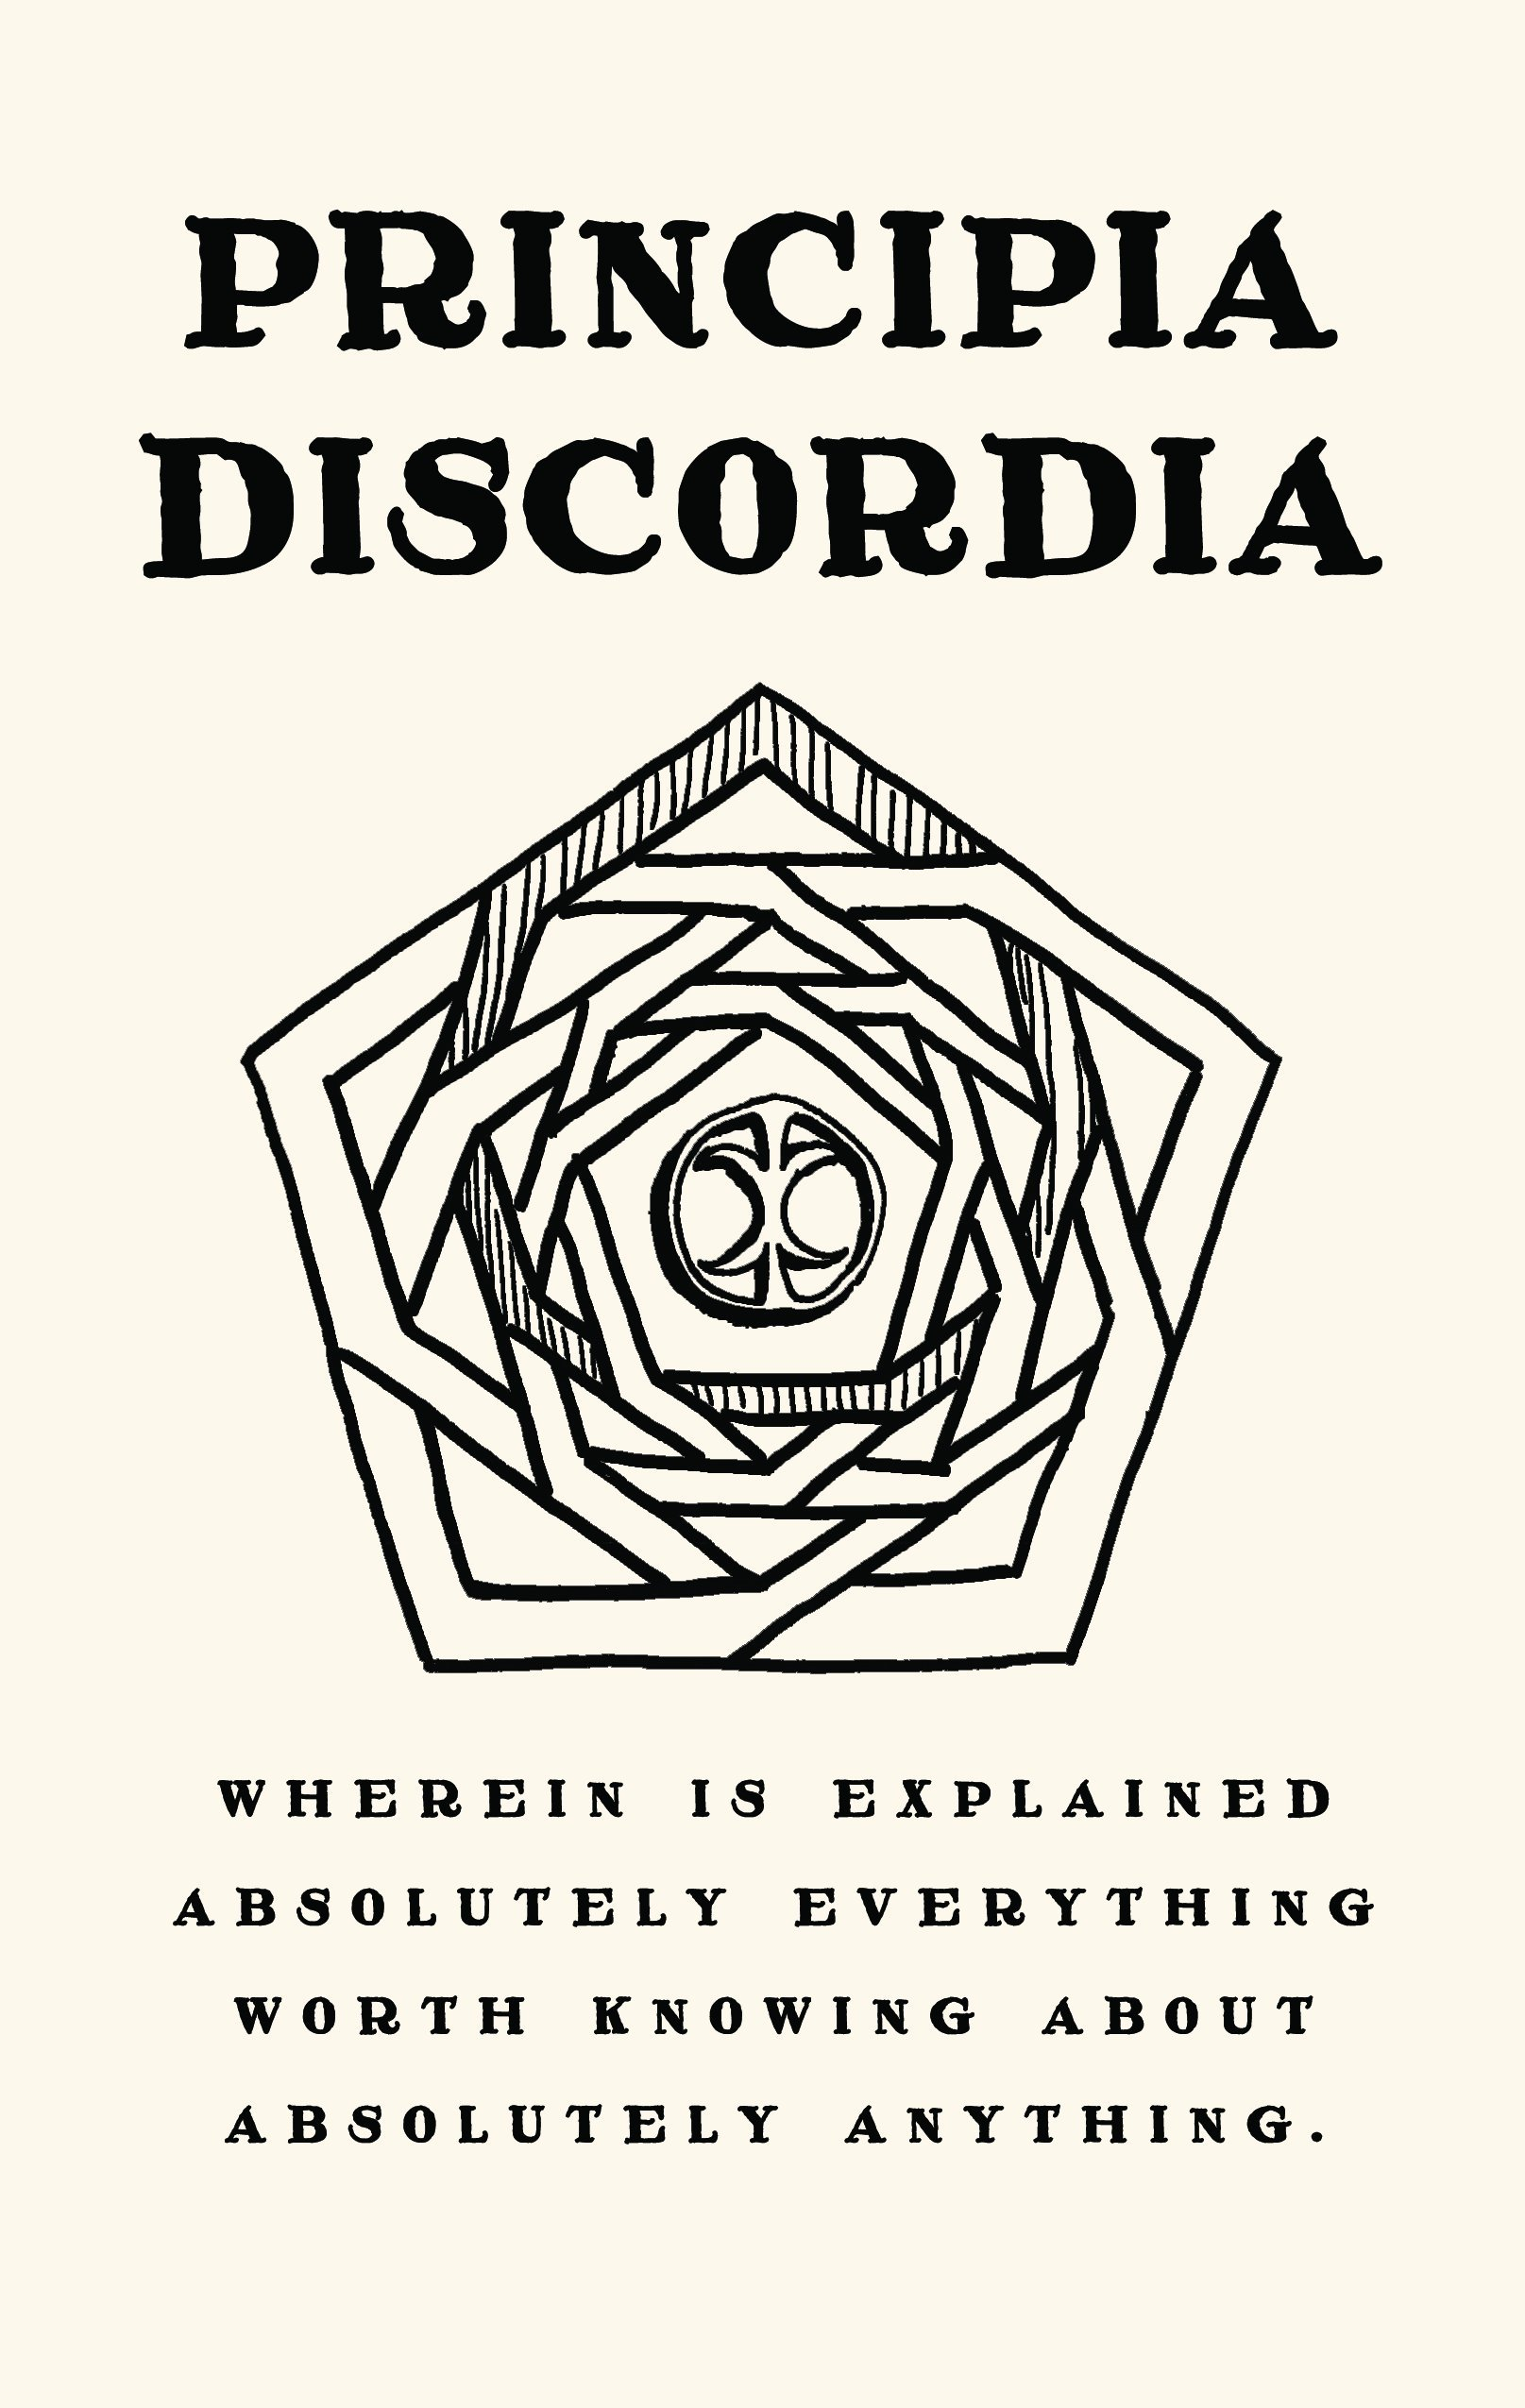 Image for Principia Discordia, or How I Found Goddess And What I Did To Her When I Found Her